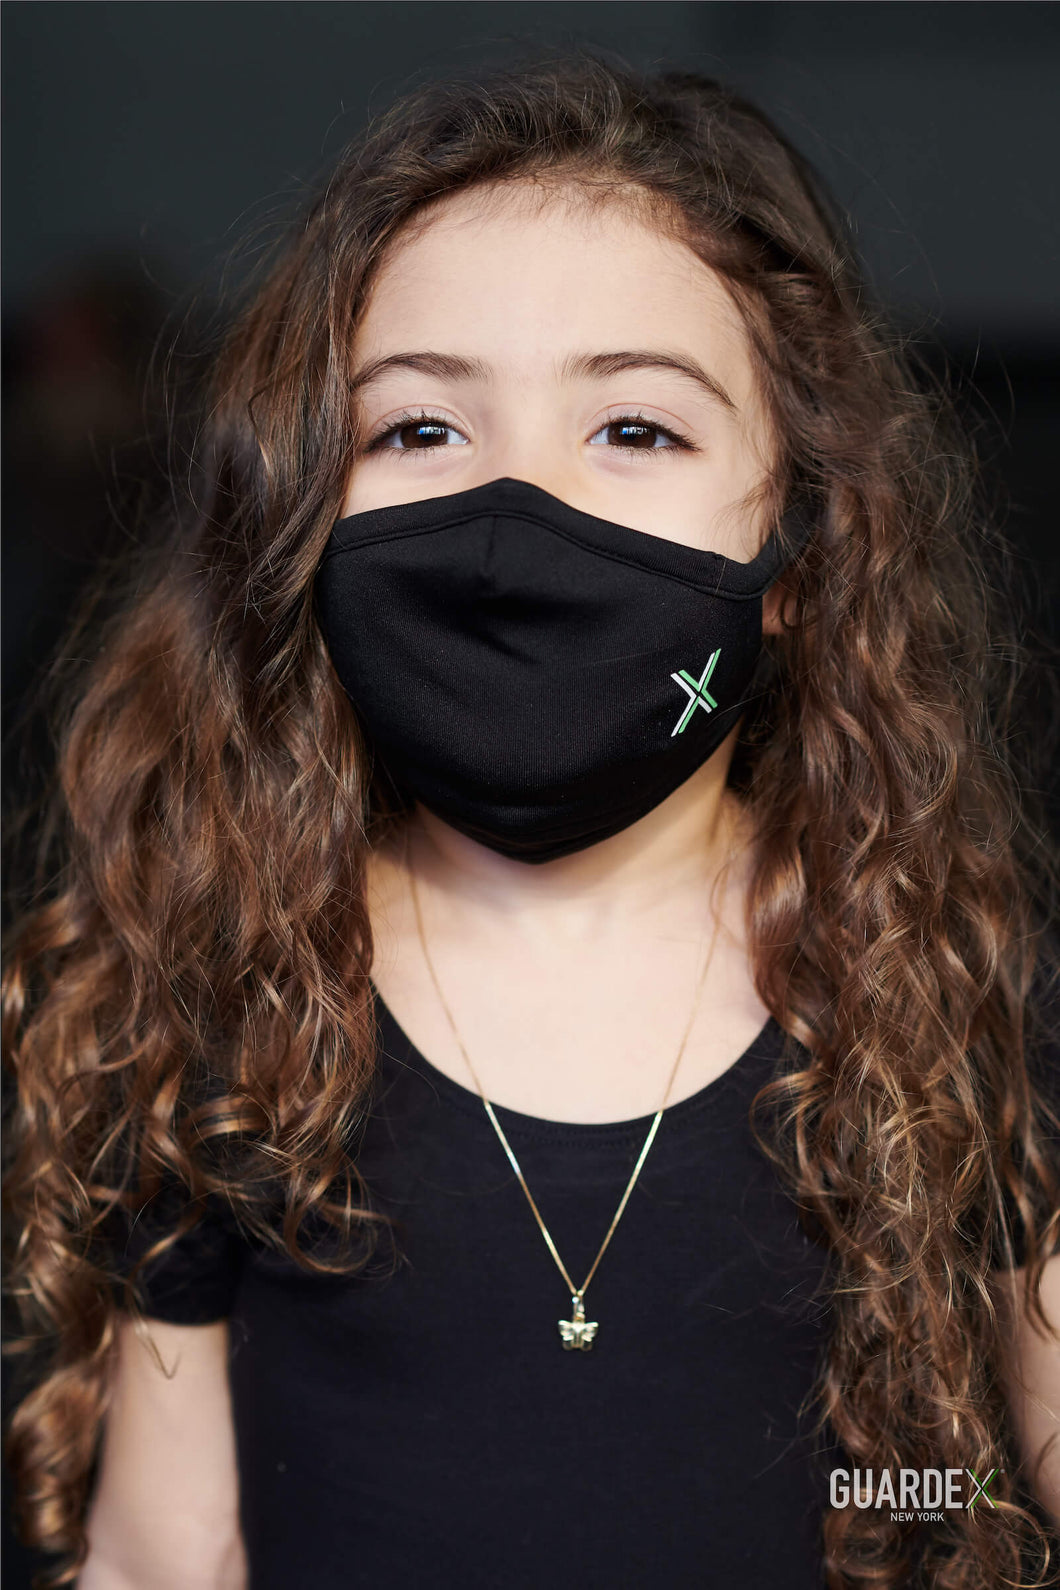 Little girl wearing Guardex Petite Face Mask plus 5 Protex Filters in black - adjustable, comfortable, for children ages 4 and up, teens, and adults who prefer a petite fit